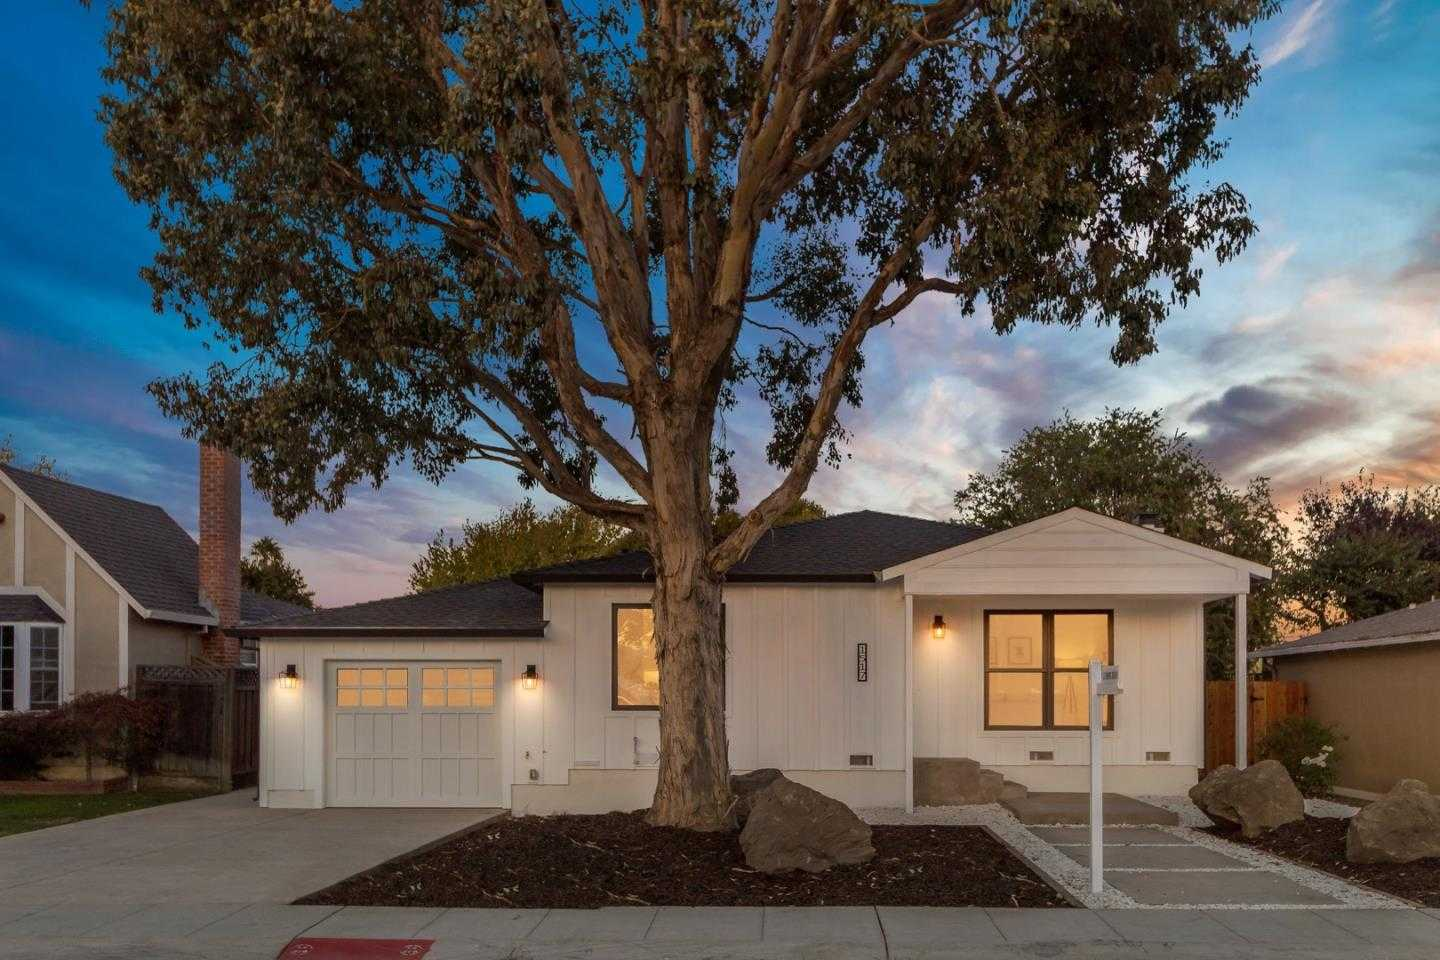 $1,788,800 - 3Br/2Ba -  for Sale in San Mateo